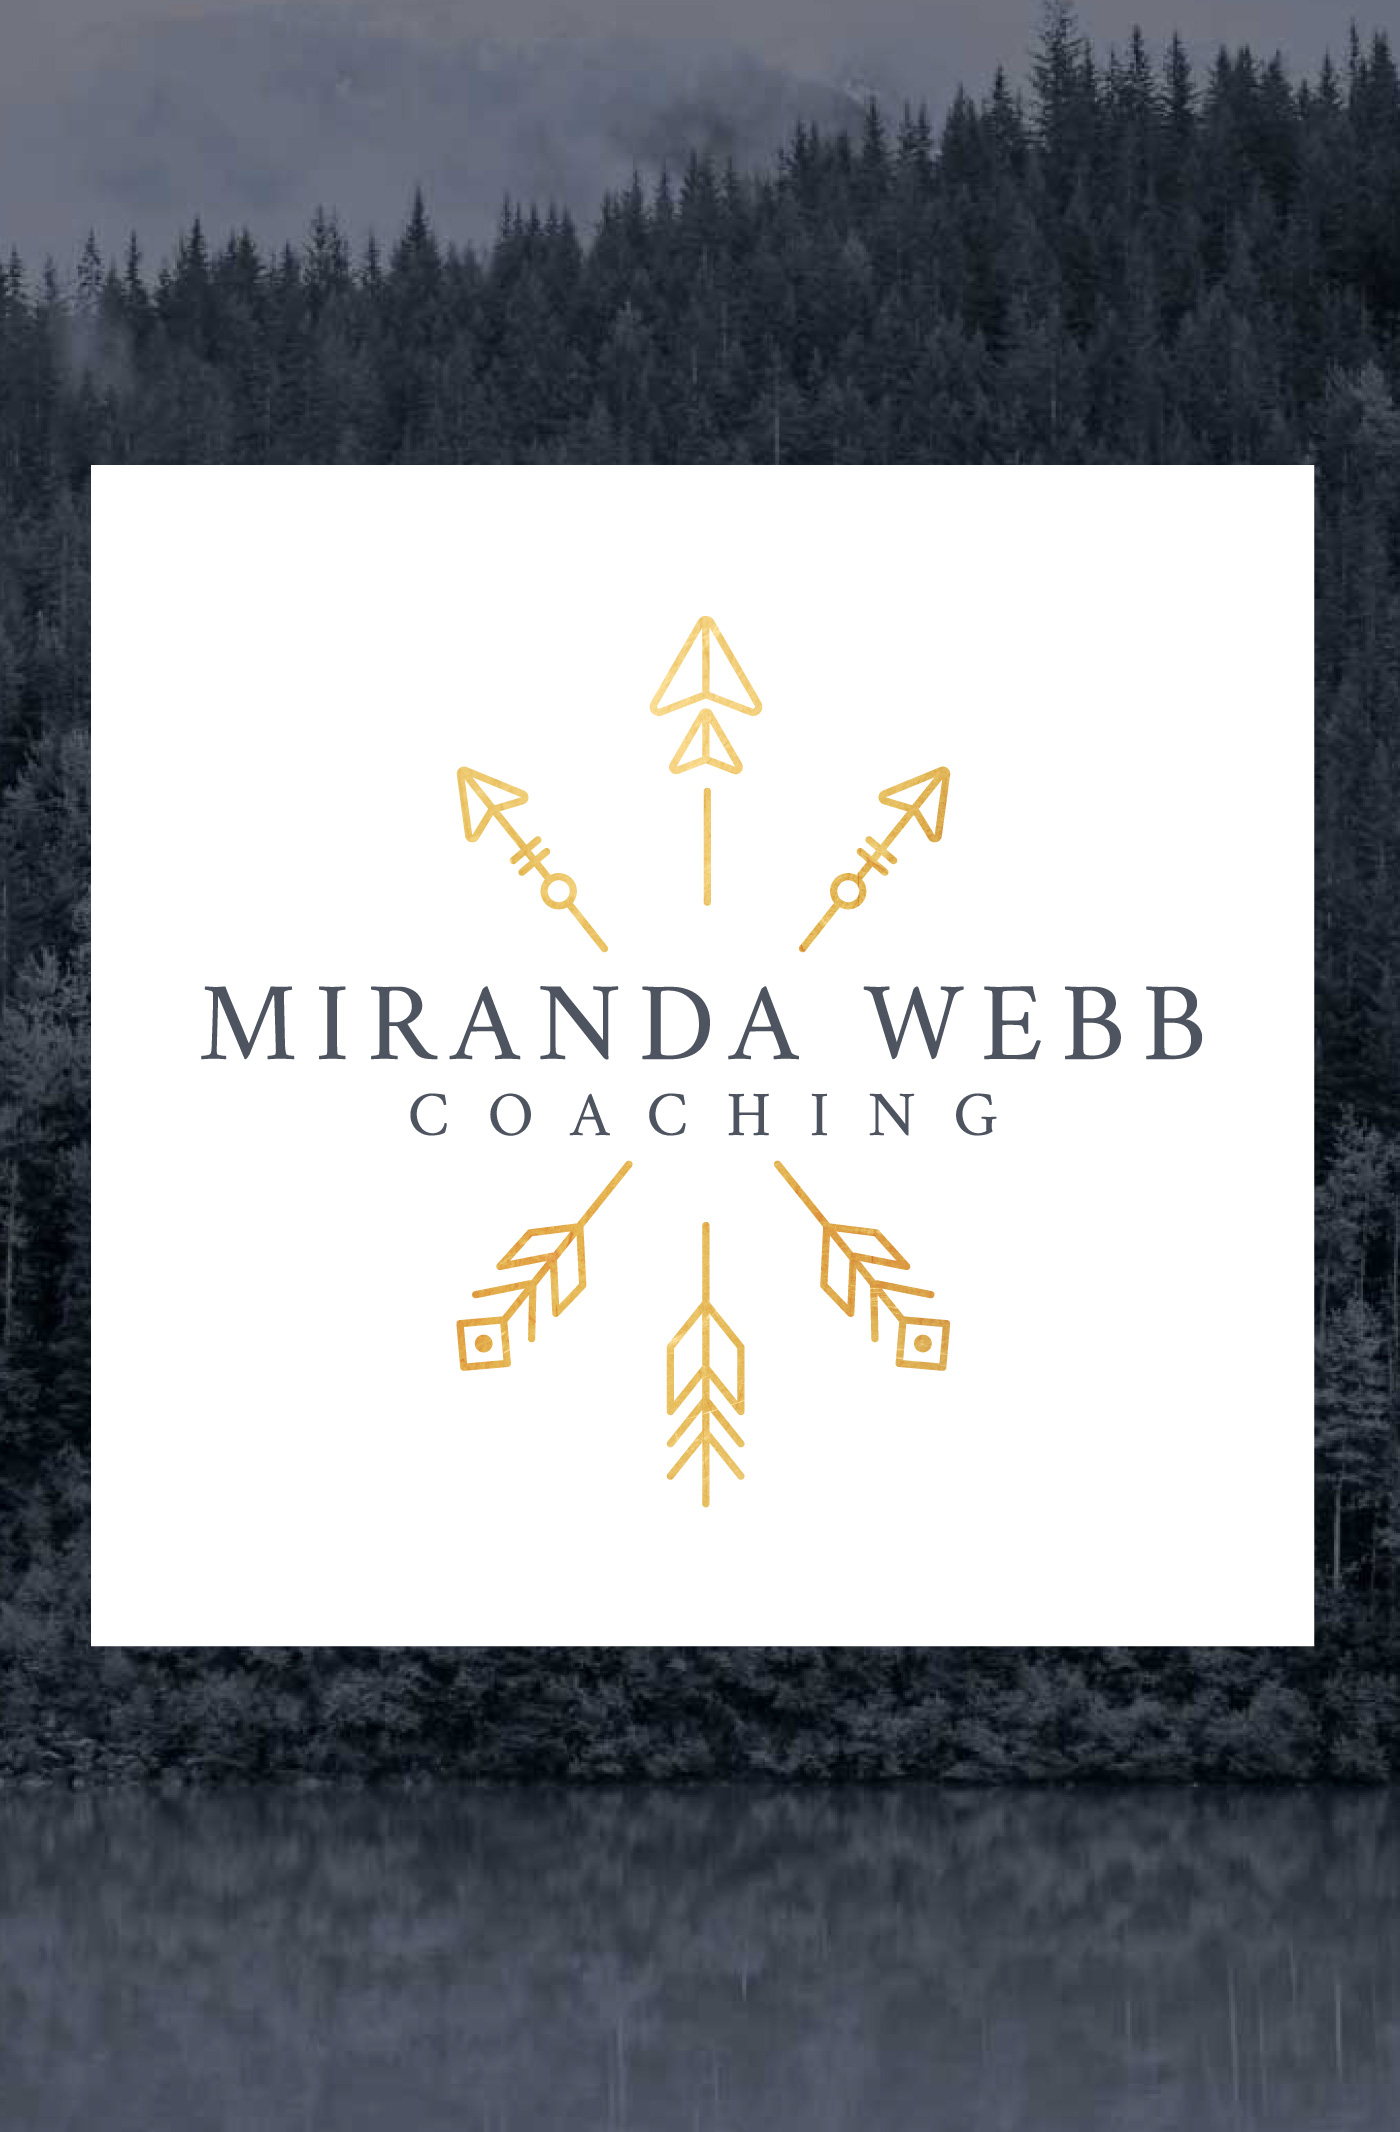 Miranda Webb Coaching Profile